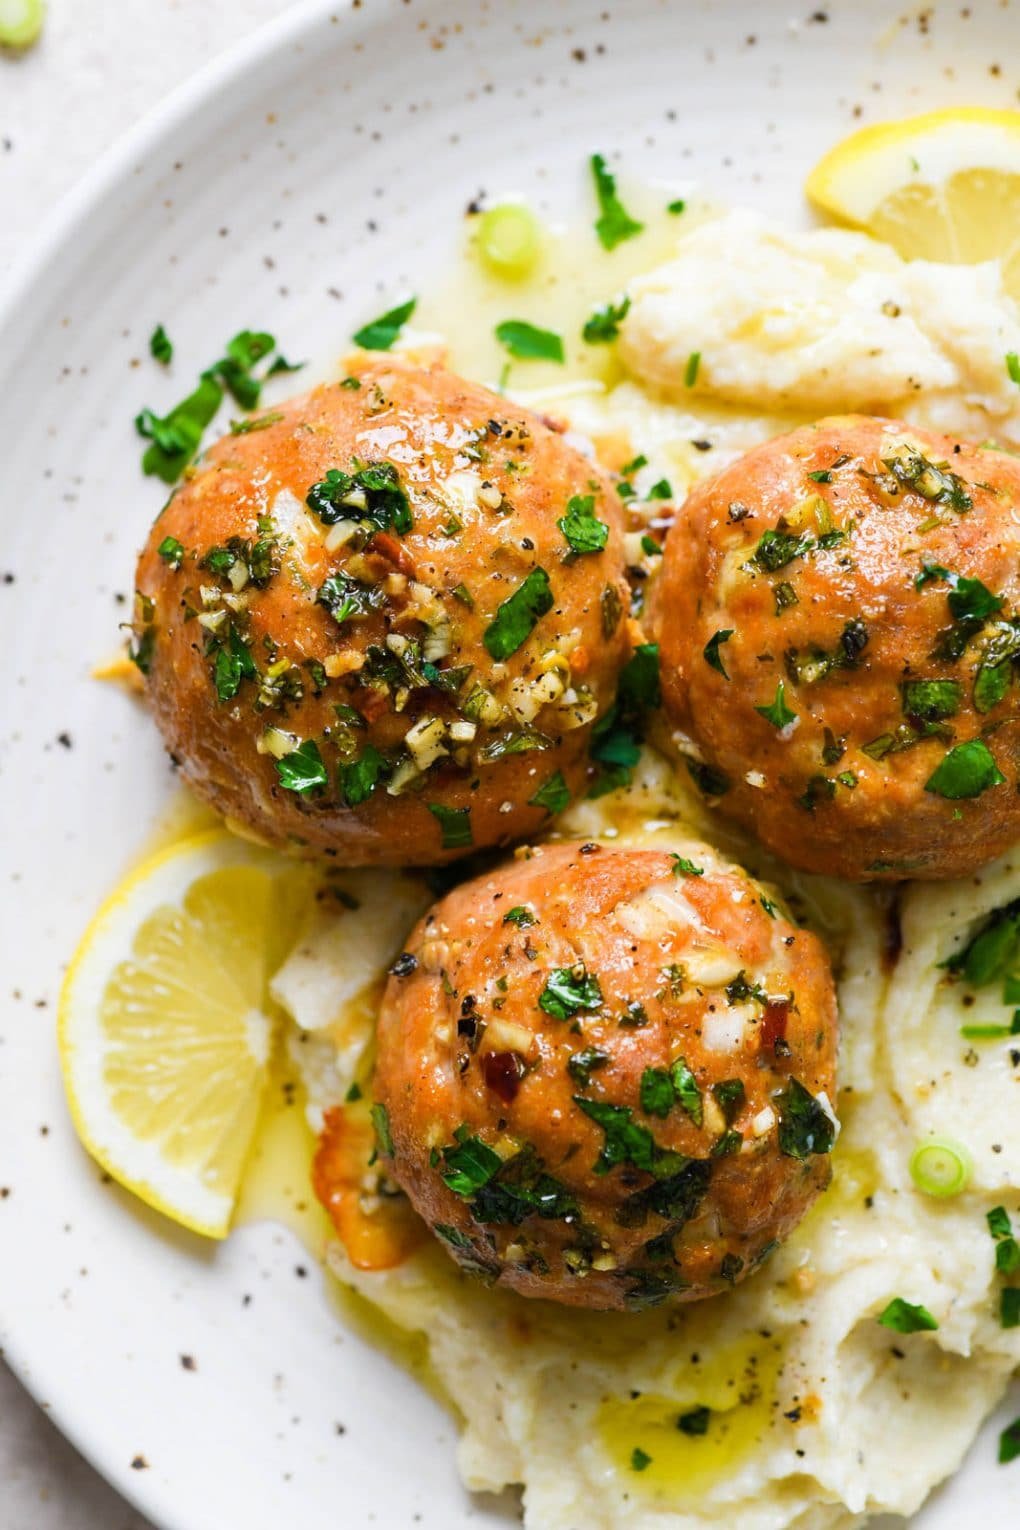 Close up shot of 3 glistening herb flecked turkey meatballs on a bed of creamy cauliflower mash, drizzled with golden colored ghee and next to a few lemon slices. On a light colored speckled plate.